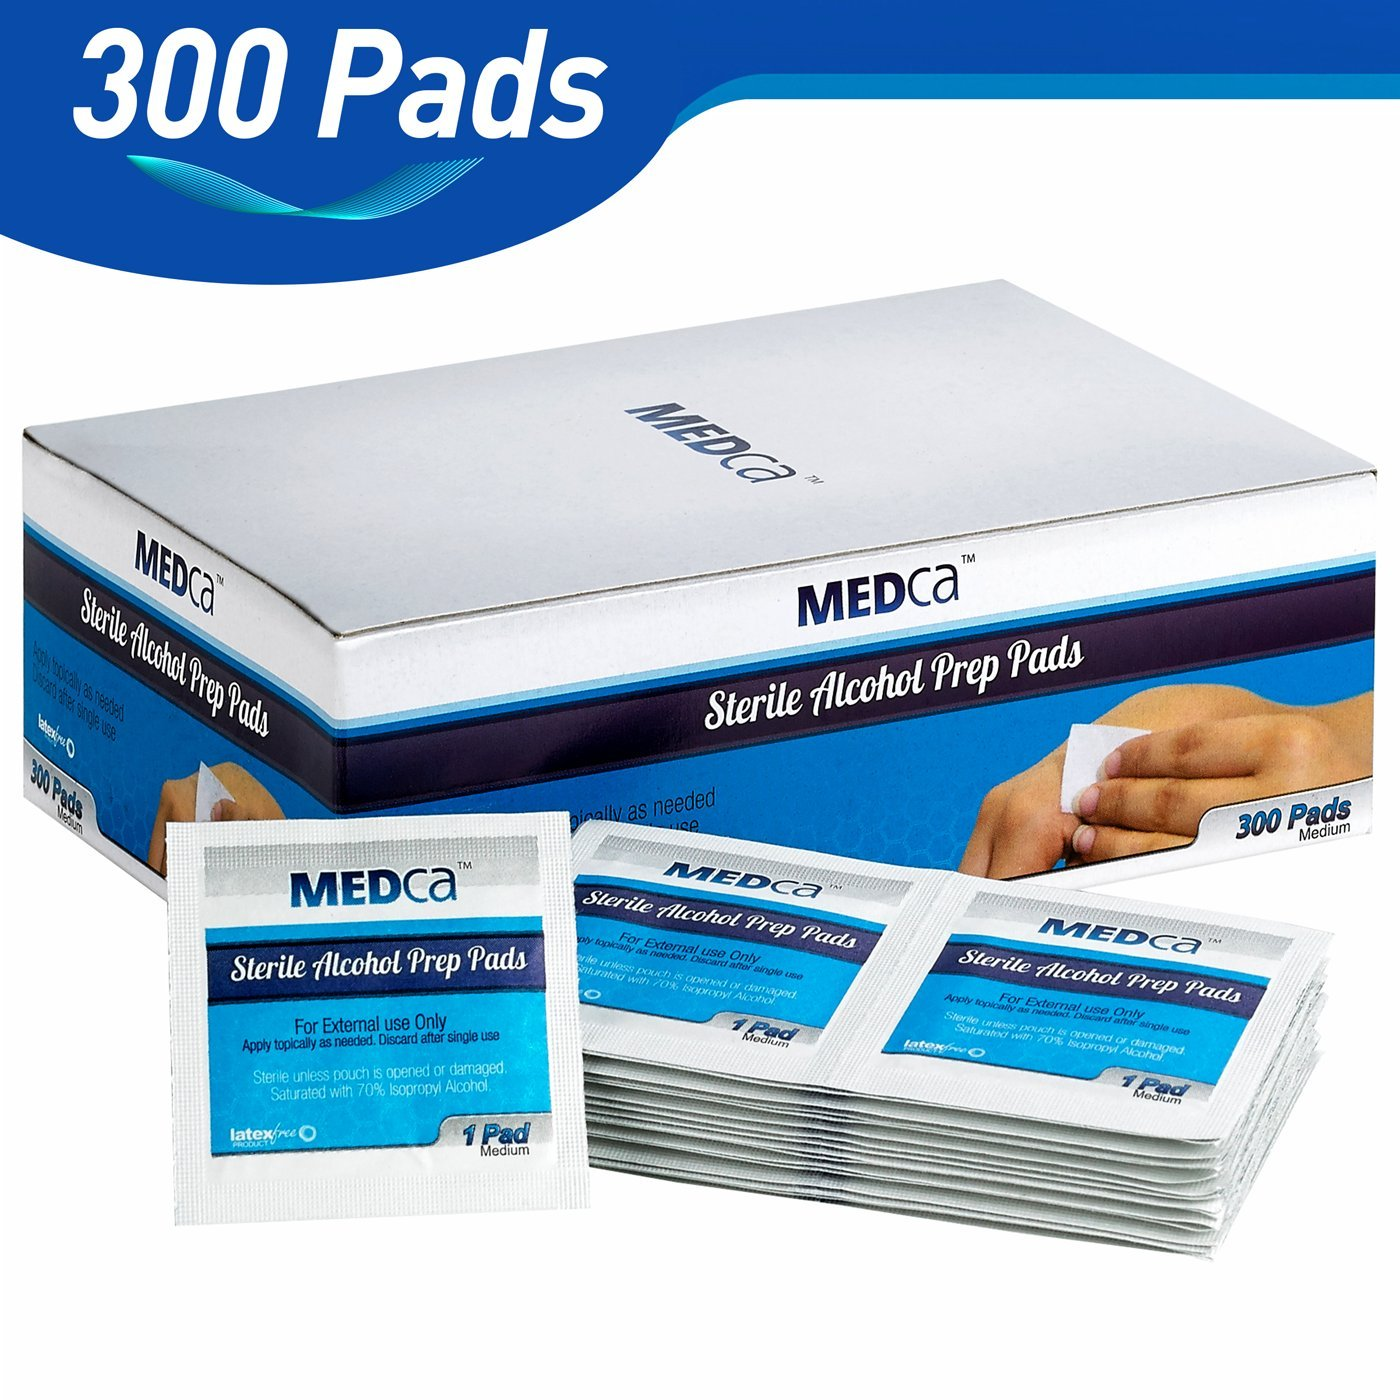 MEDca Alcohol Prep Pads, Sterile, Medium, 2-Ply (PACK OF 300